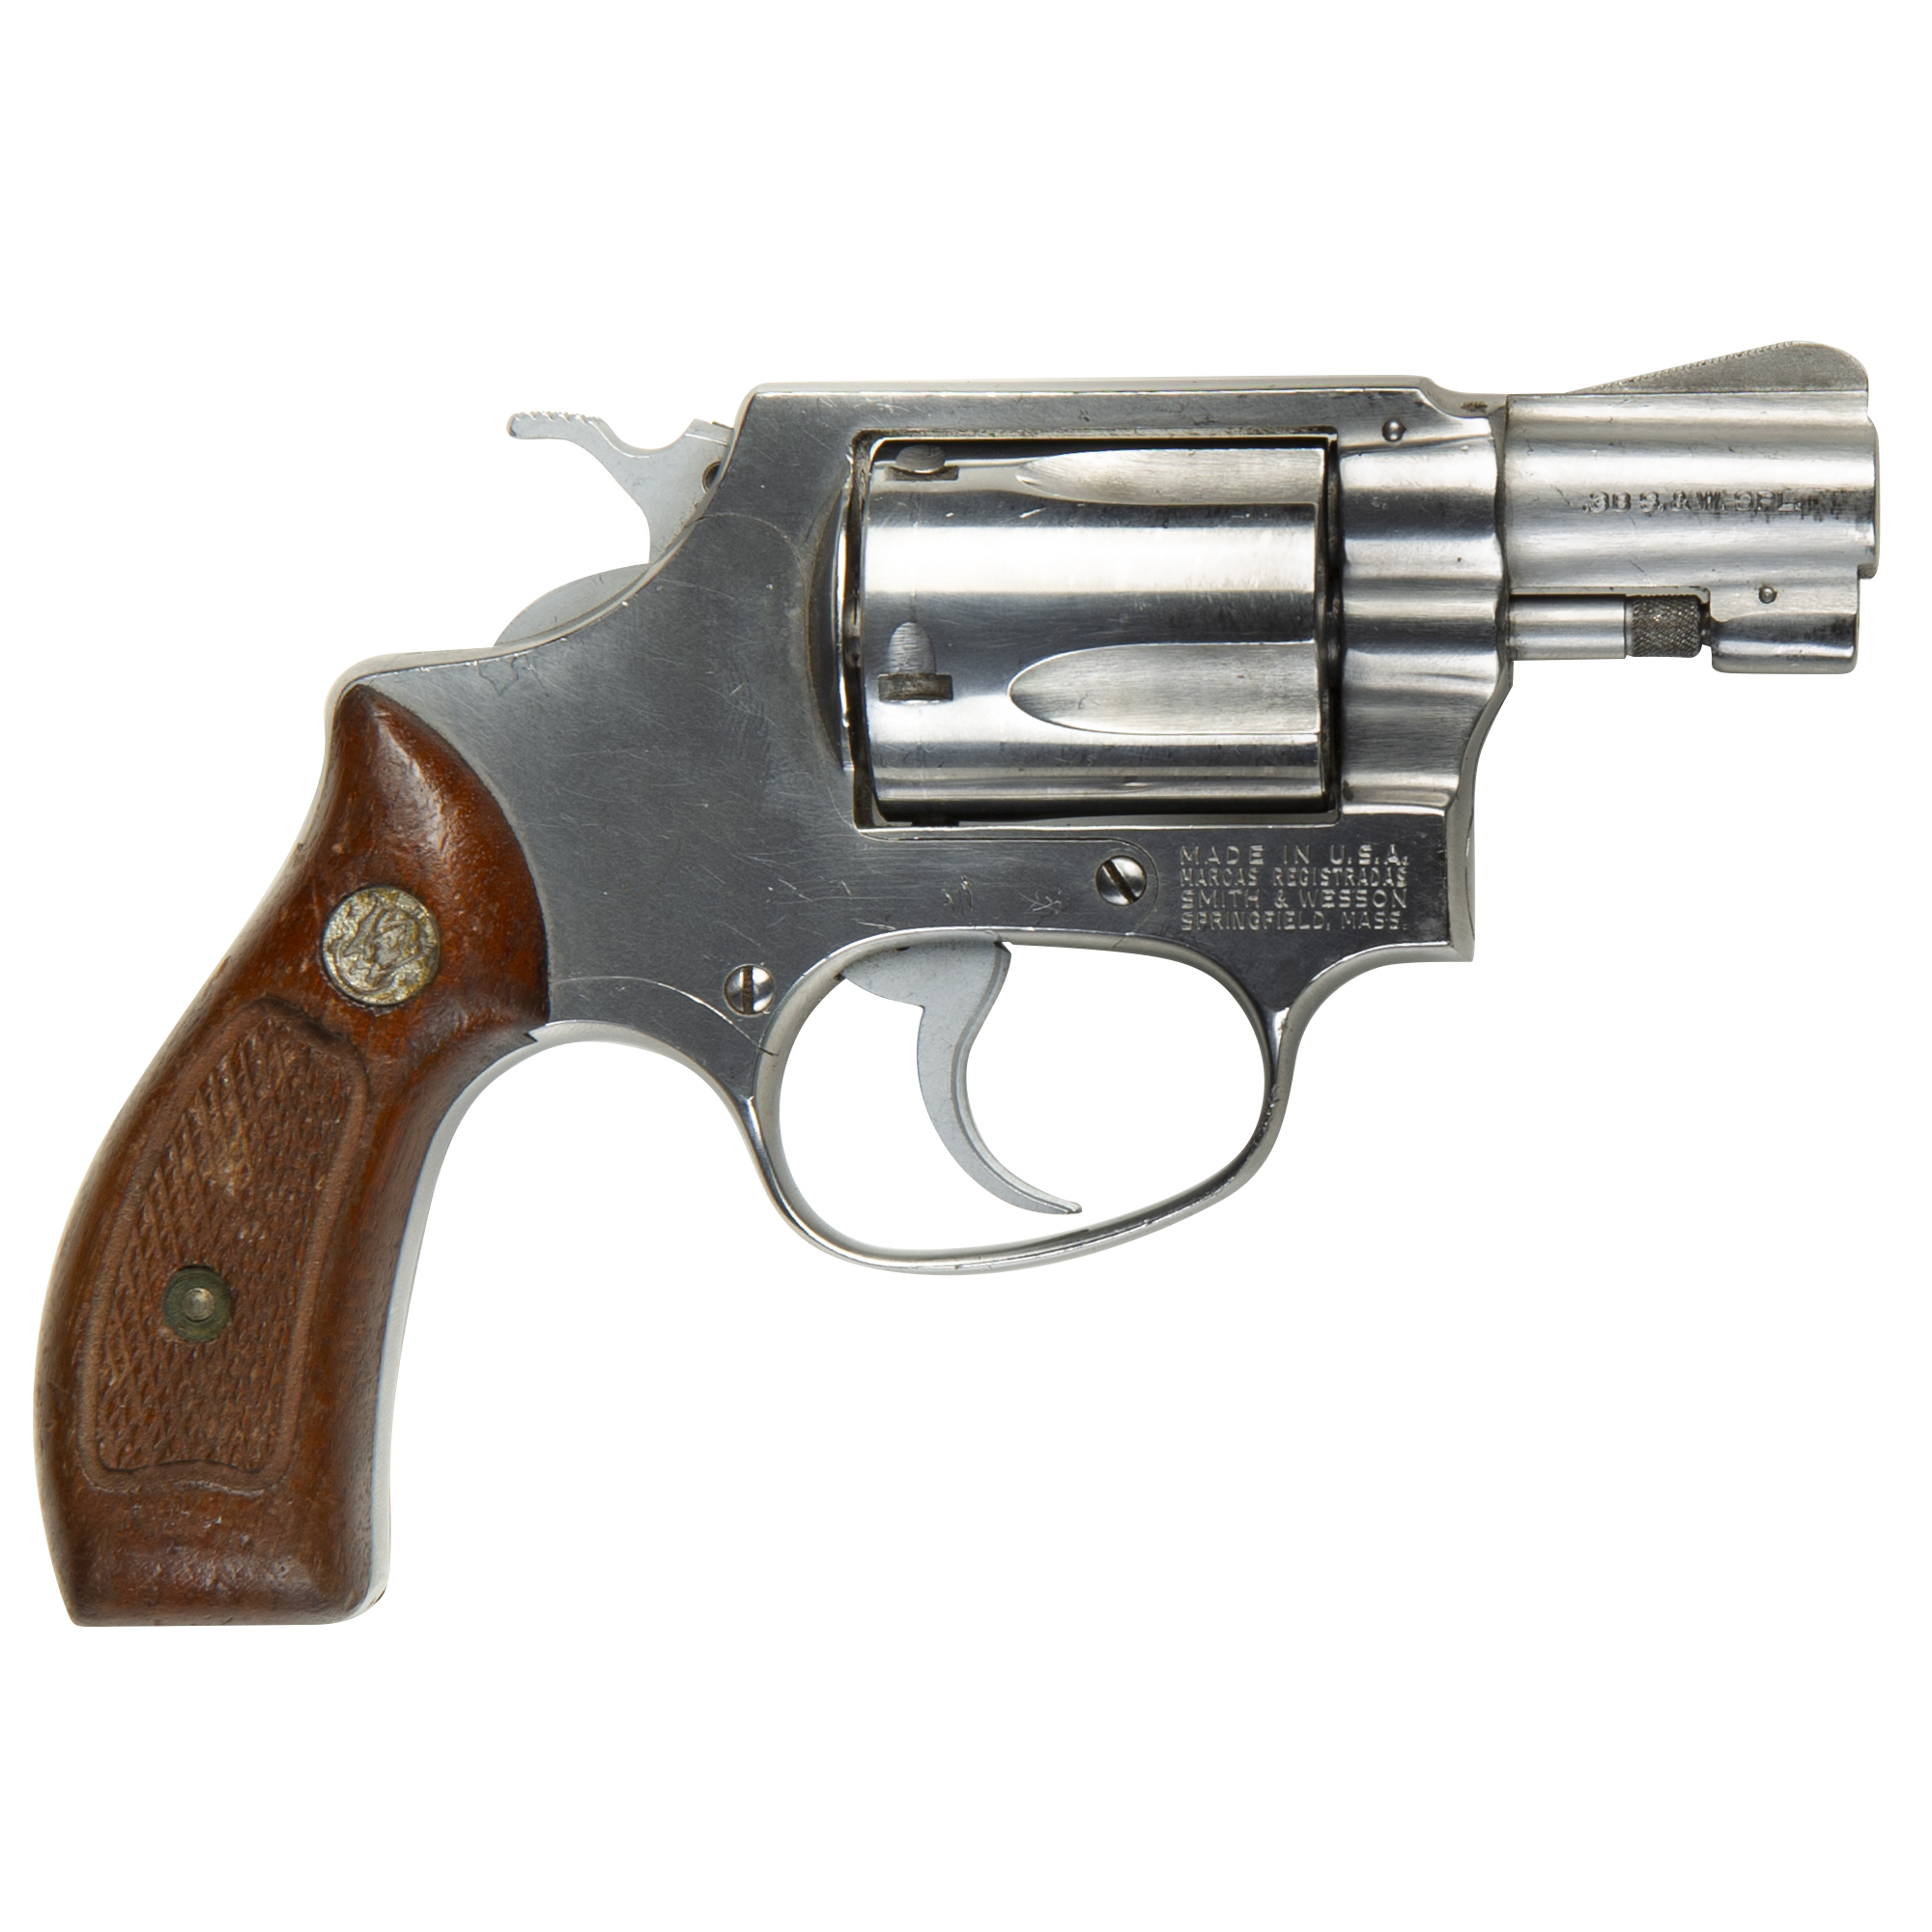 Used Smith & Wesson Model 60 Revolver, .38 Special +P thumbnail